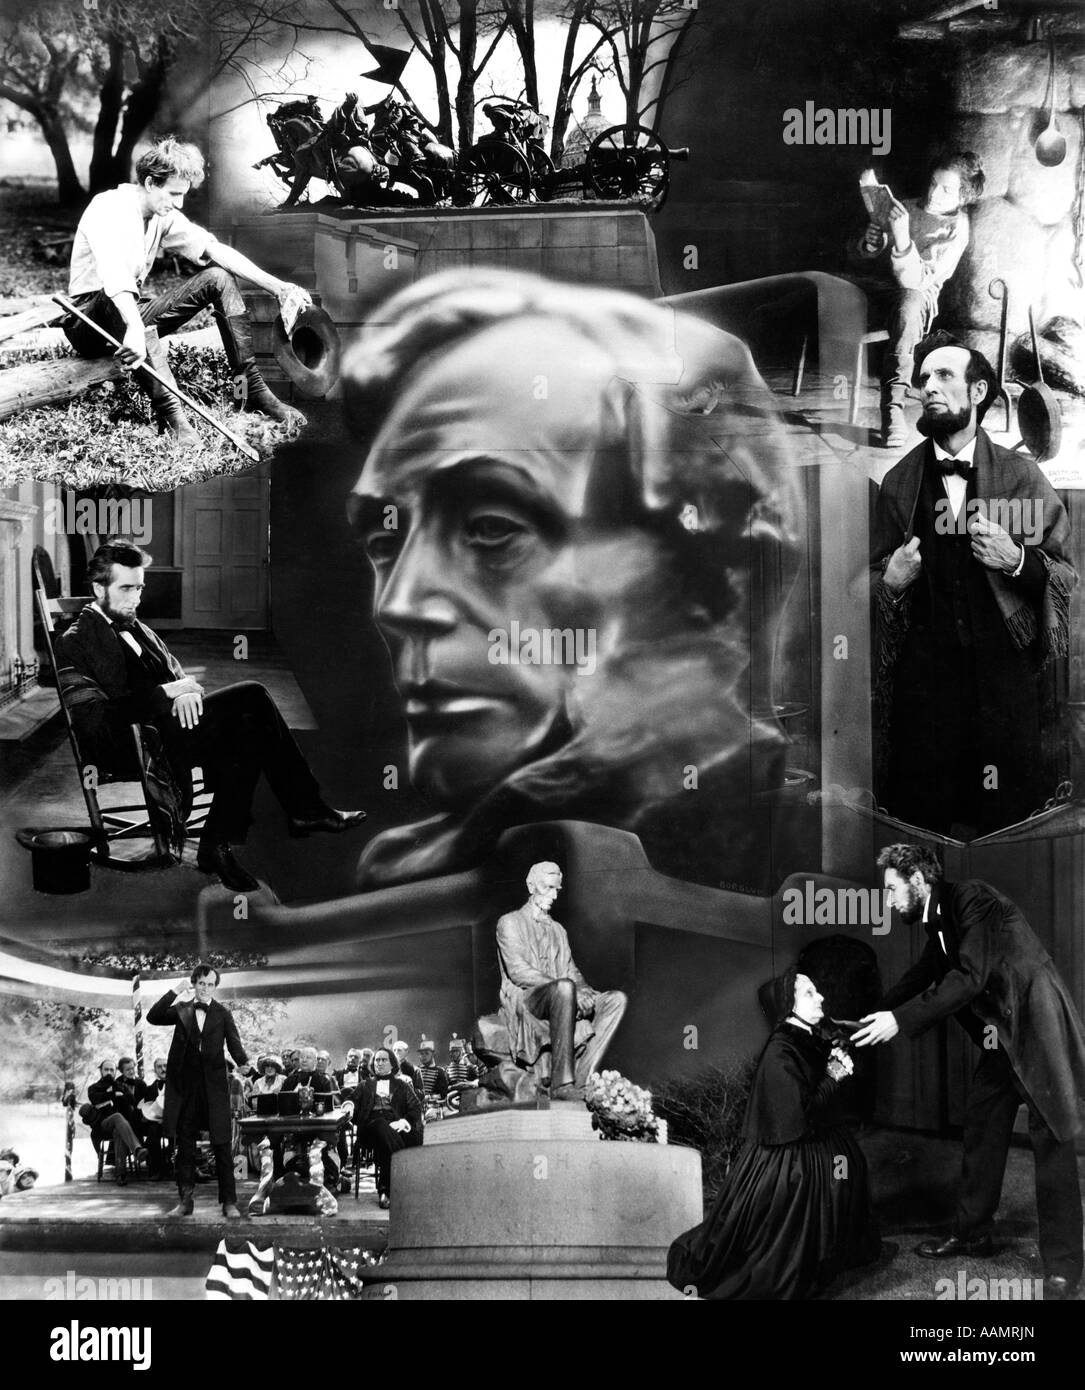 1930s MONTAGE OF SCENES FROM LIFE OF ABRAHAM LINCOLN - Stock Image